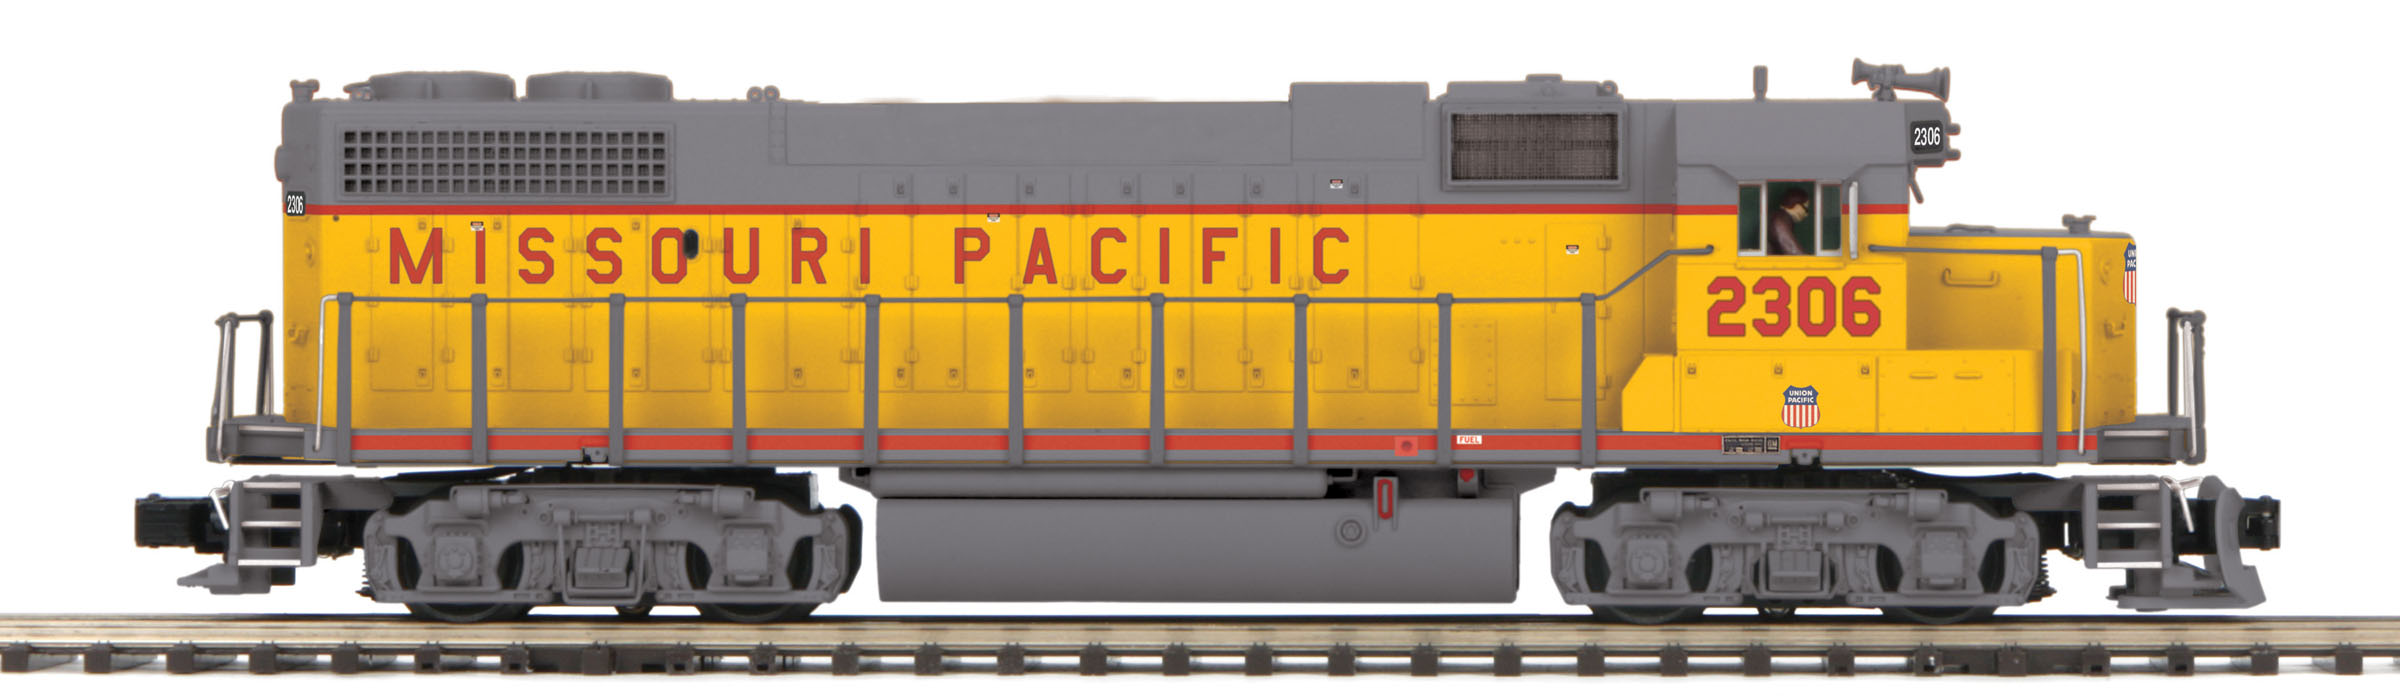 MTH20-20489-1 Missouri Pacific GP38-2 Diesel w/ PS 3.0